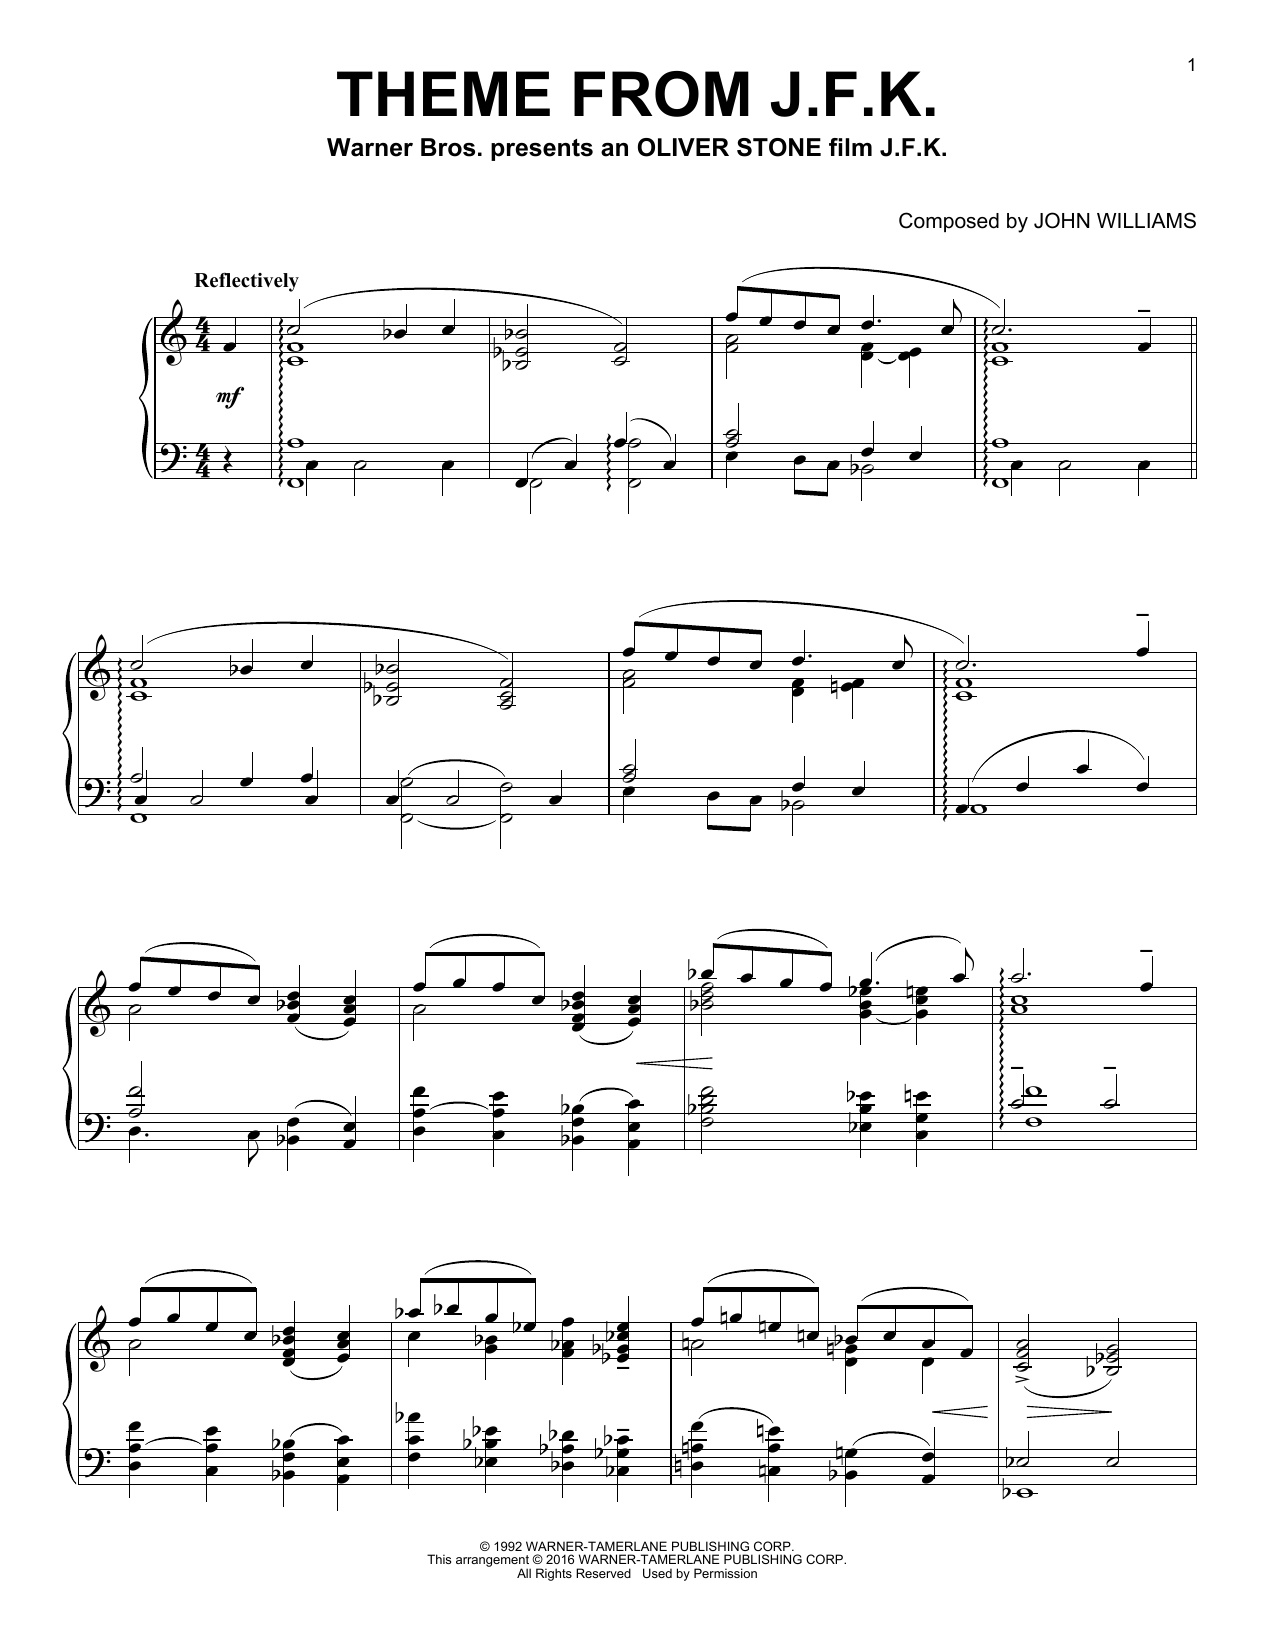 John Williams Theme From J.F.K. sheet music notes and chords. Download Printable PDF.